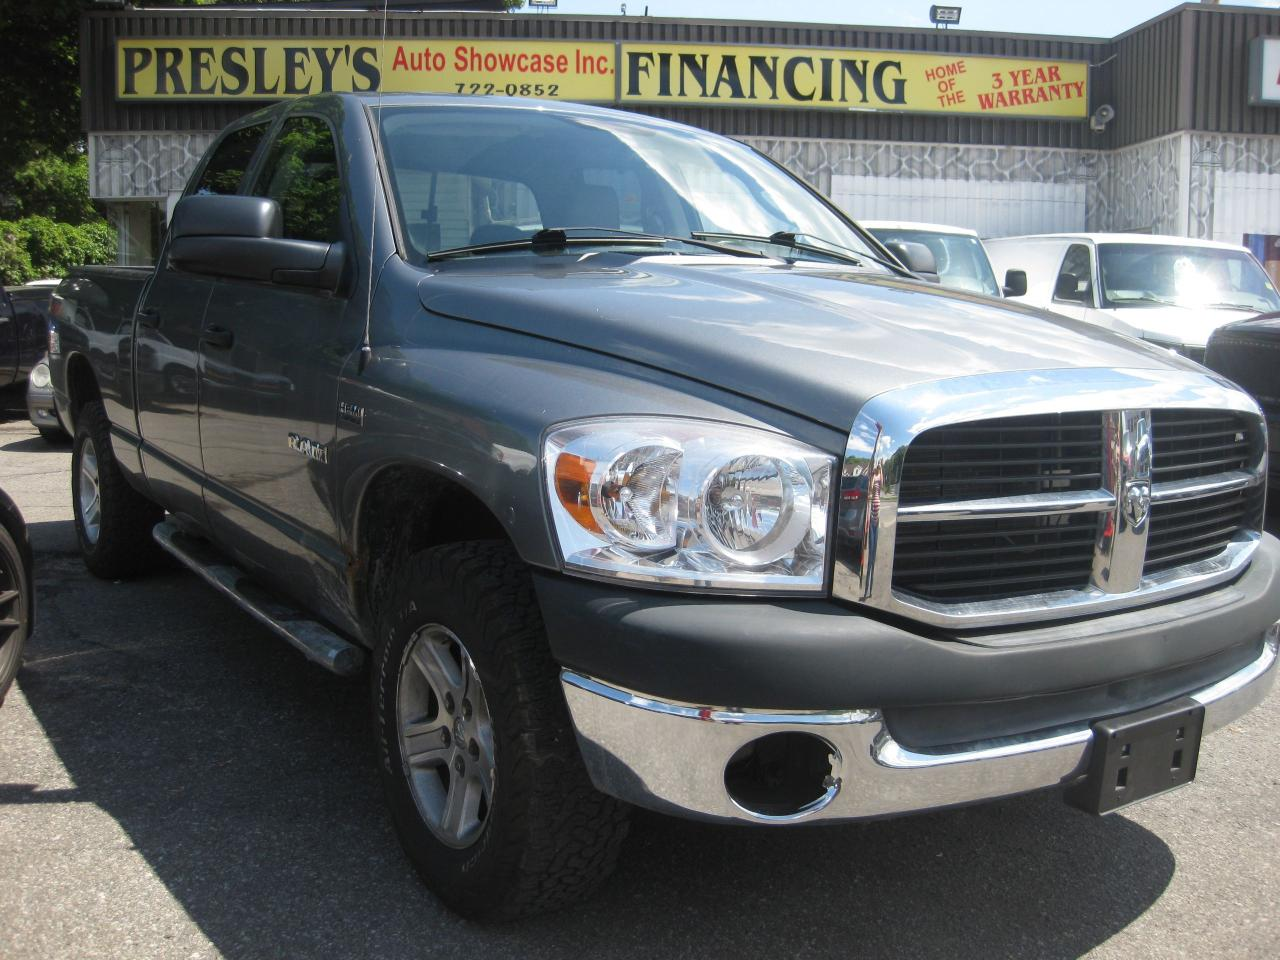 used 2008 dodge ram 1500 crew cab 5 7l 8cyl 4x4 ac 6pass cruise pl pw for sale in ottawa ontario carpages ca [ 1280 x 960 Pixel ]